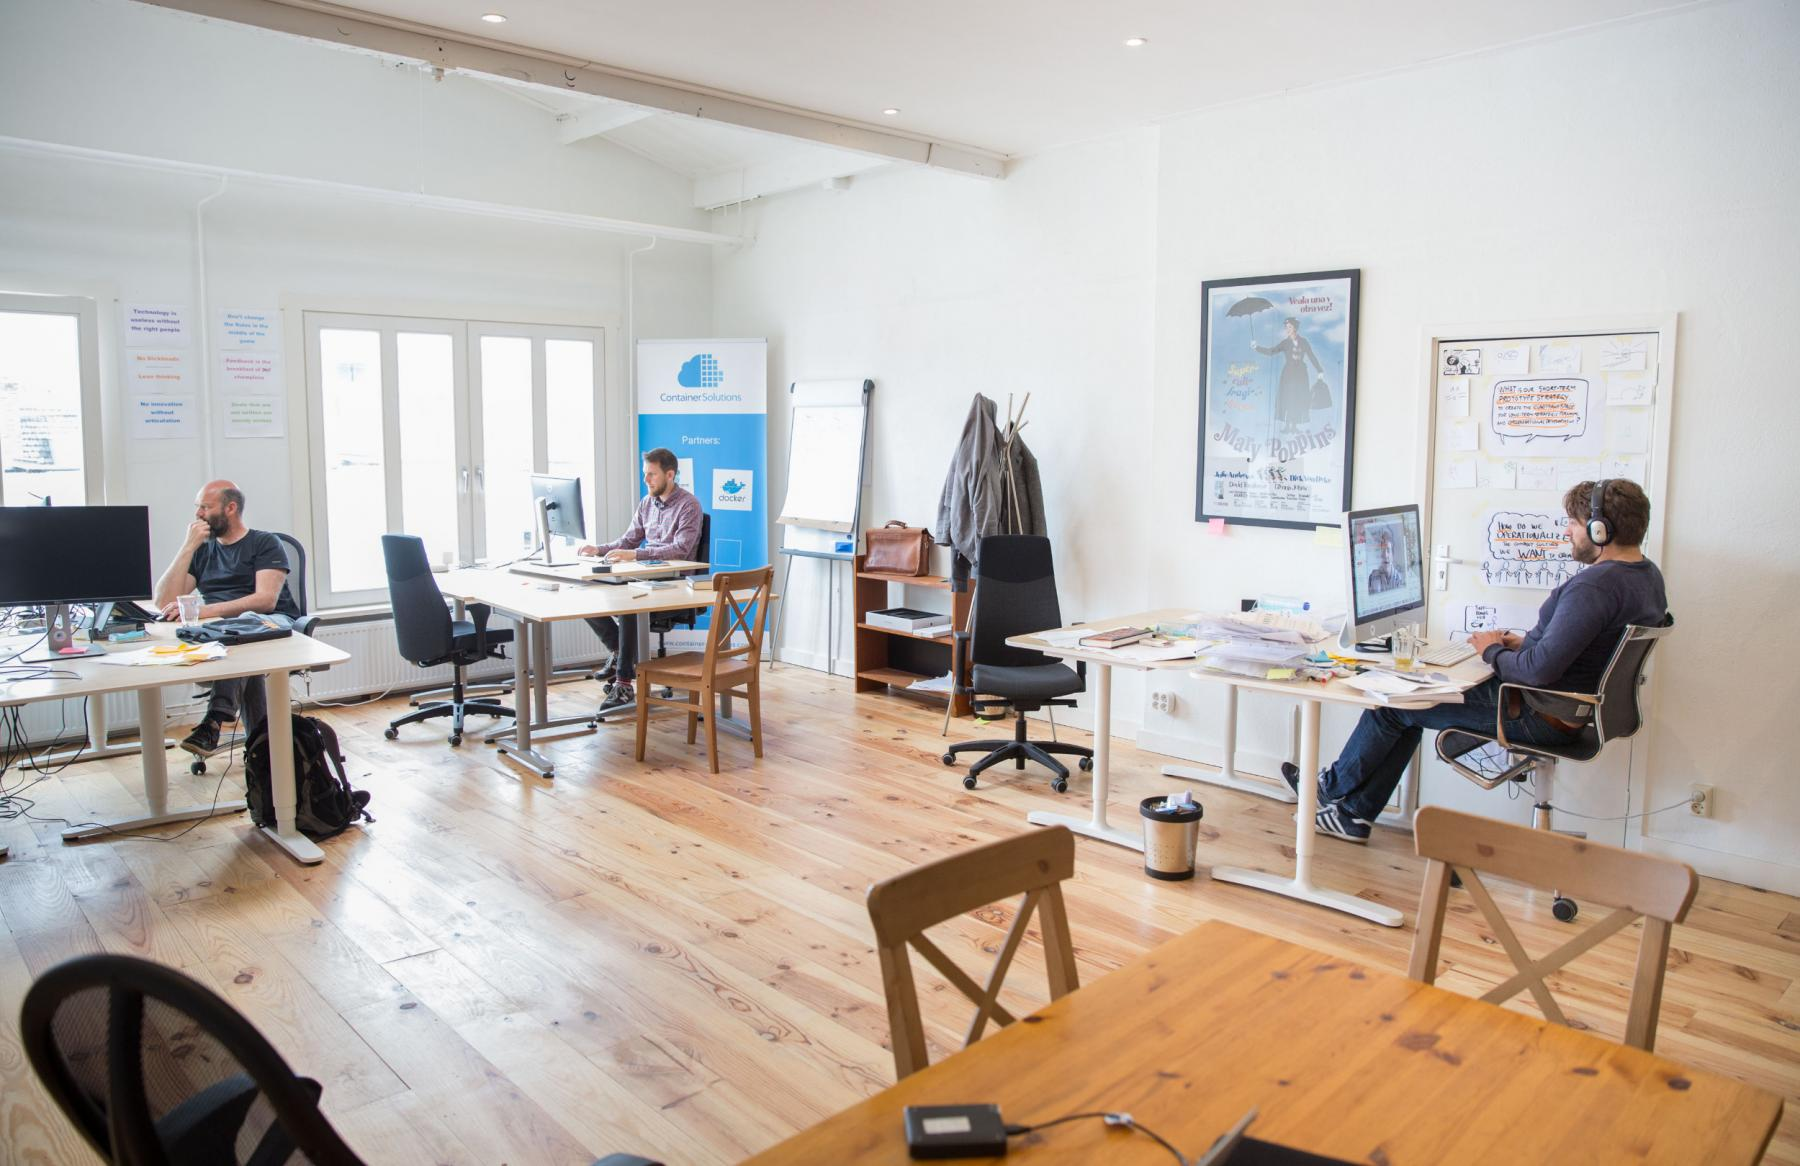 Office space in Amsterdam